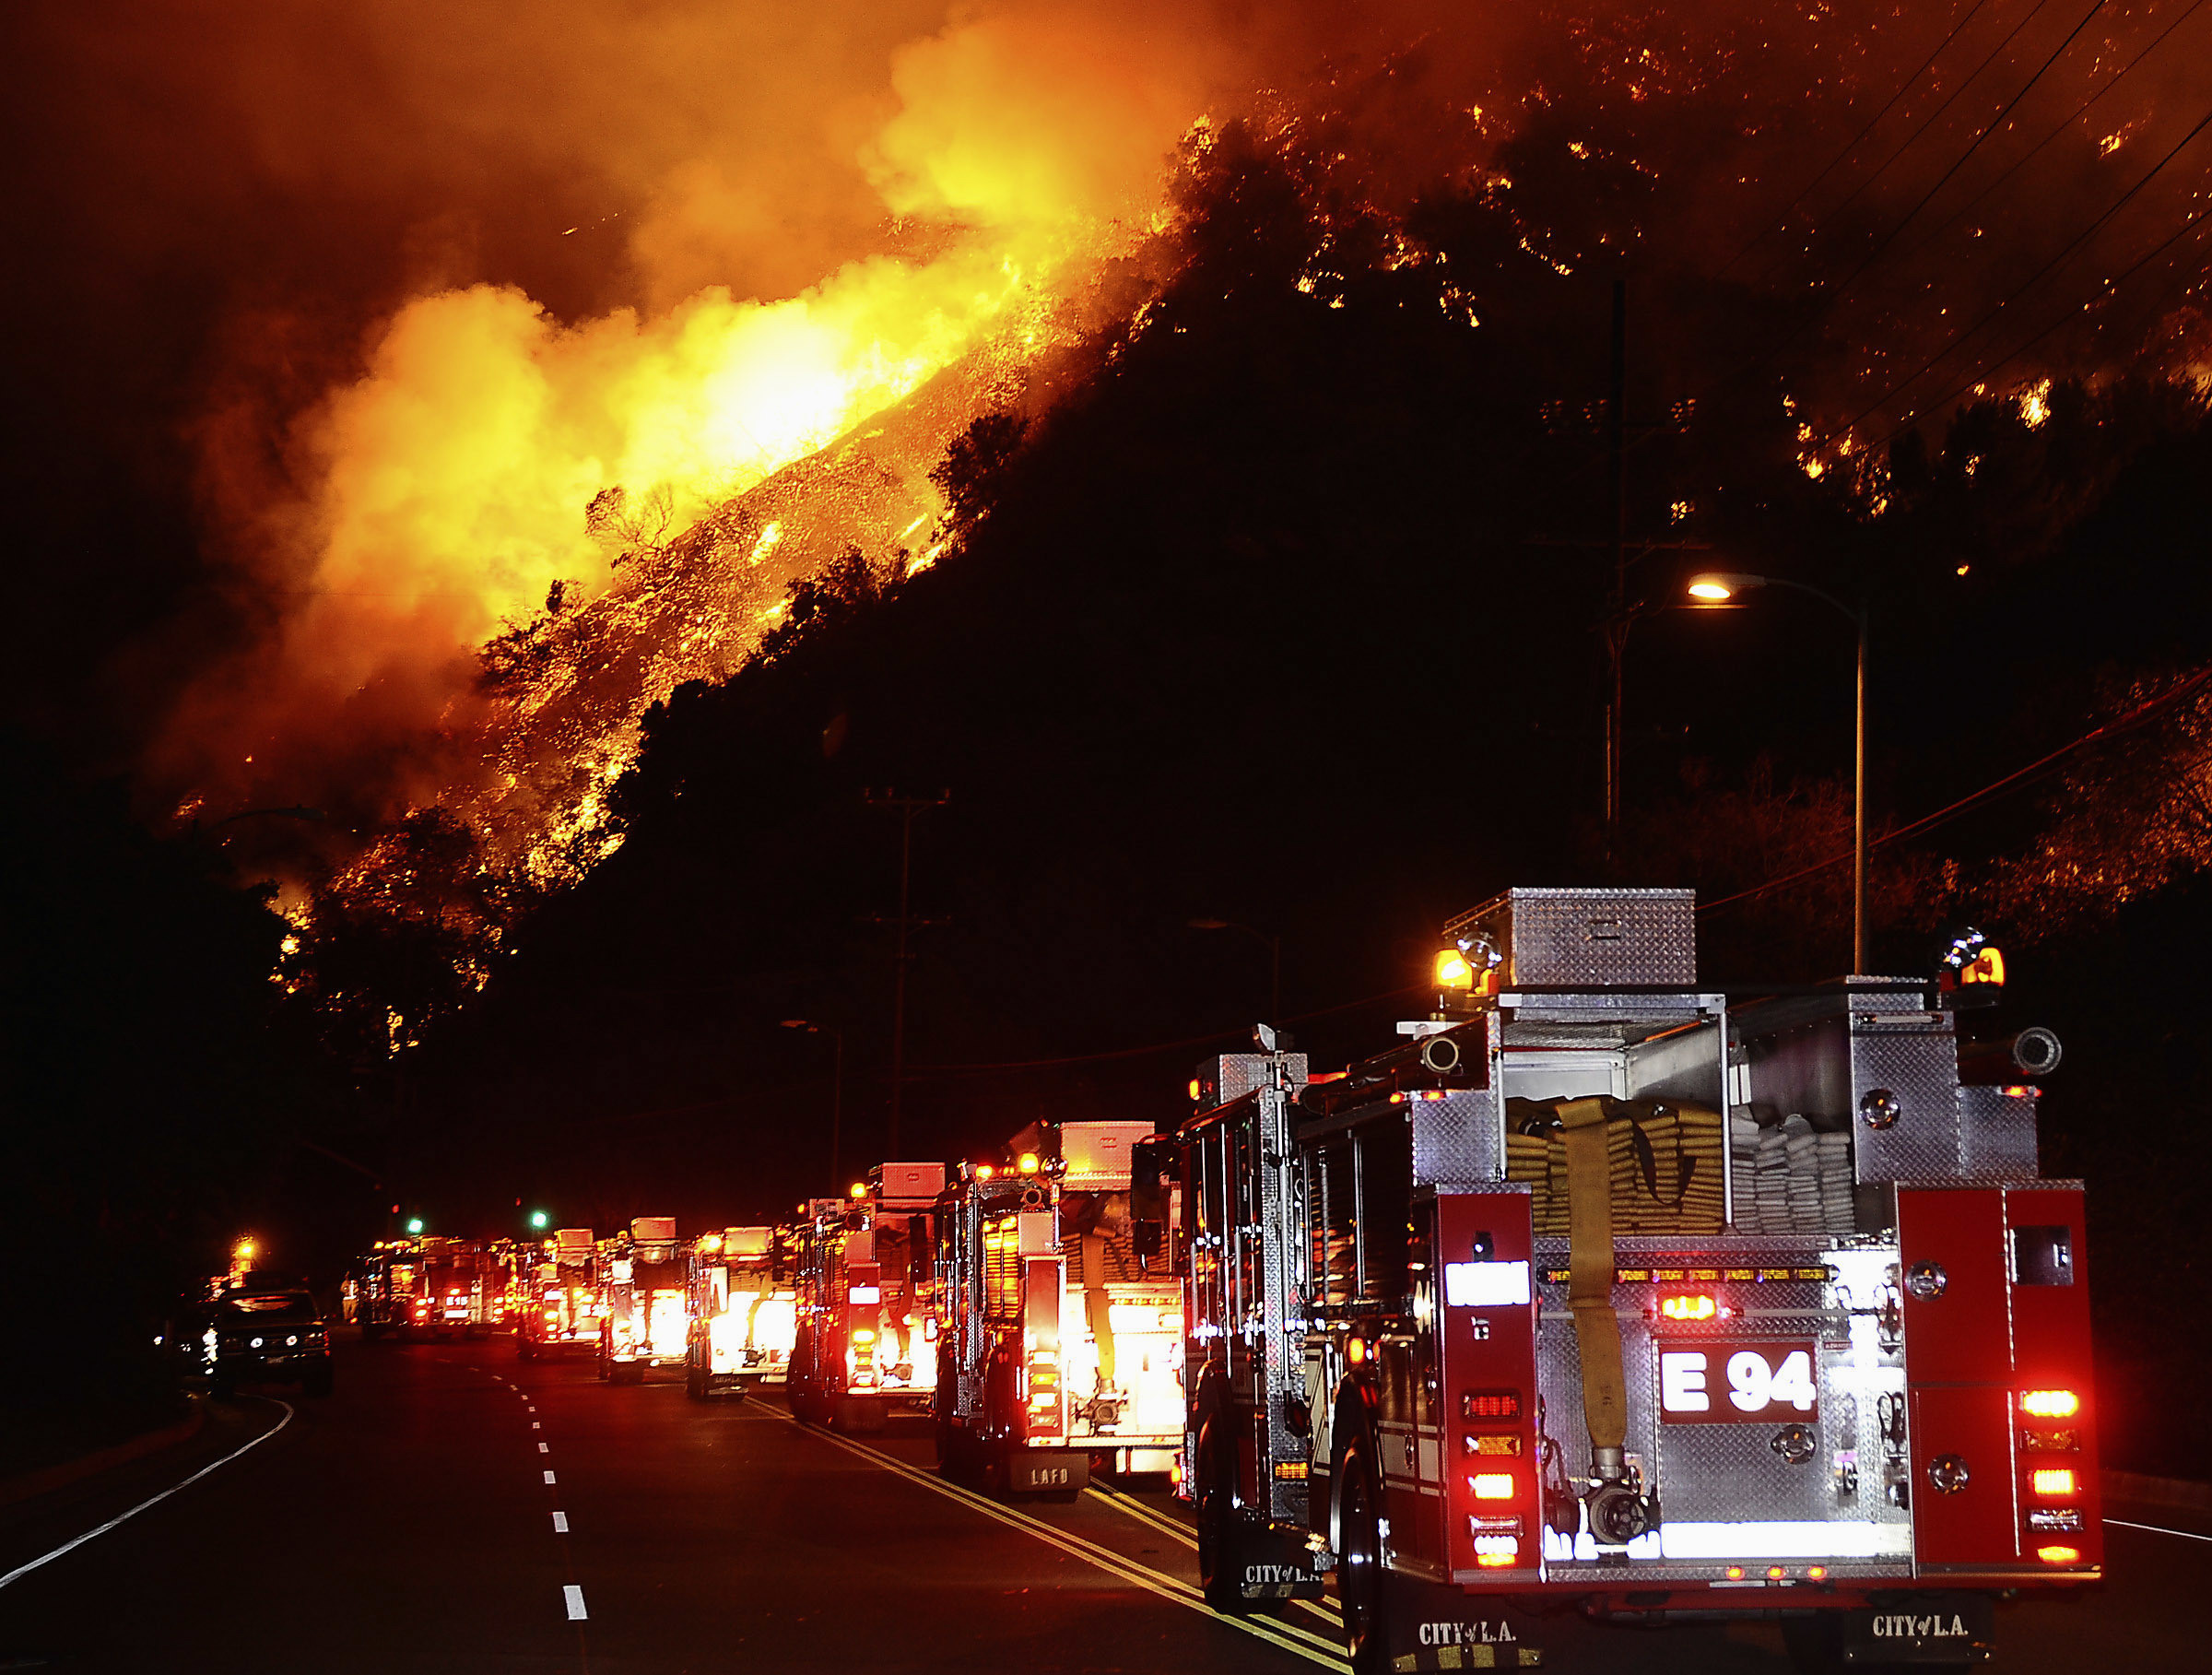 Fire trucks are shown lined up as a hillside burns during a brush fire in the Sepulveda Pass on the western edge of Los Angeles in the early morning of October 23, 2008. One hundred acres burned, threatening homes, but the blaze was extinguished without loss or injury.   REUTERS/Gene Blevins    (UNITED STATES) - GM1E4AO05TK01